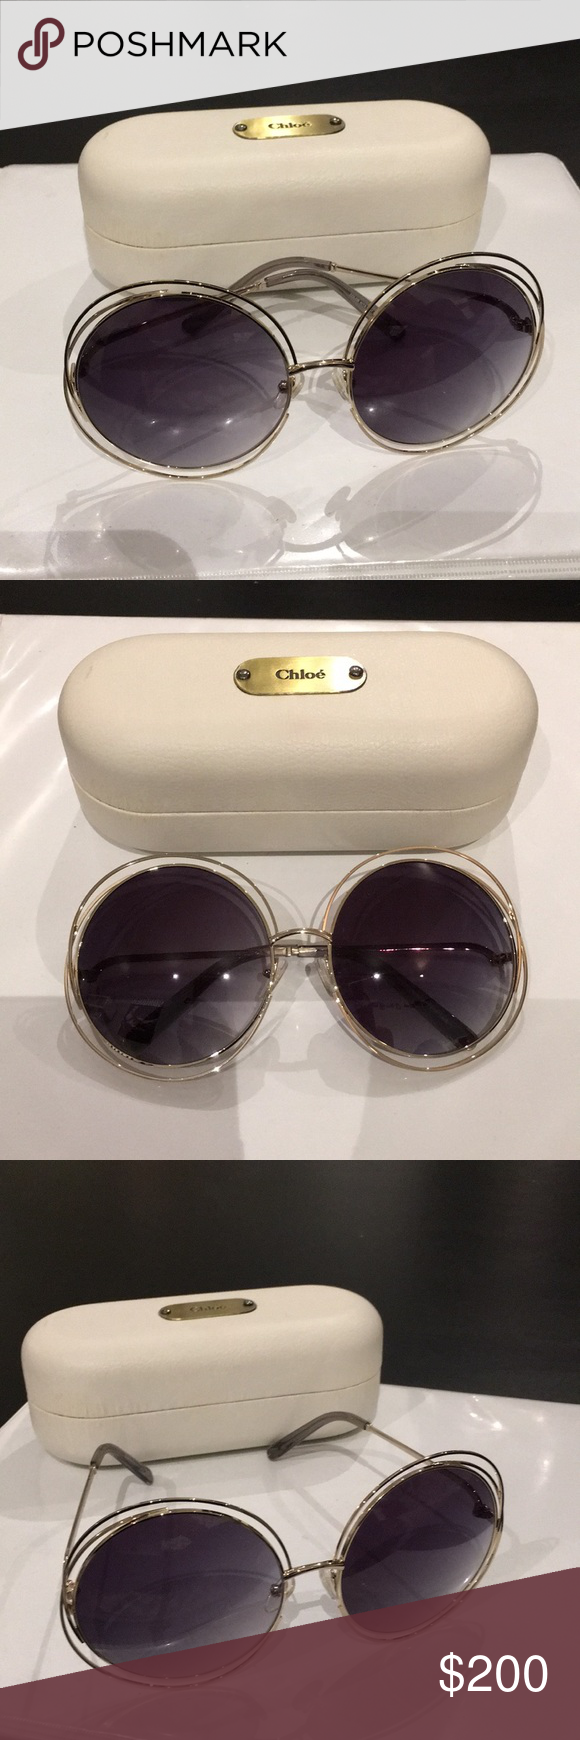 ee1b8d771764 Chloe Women s Carlina glasses. Chloe Women s Carlina 62mm Gray gradient oversized  round glasses. Glasses are in pristine condition.